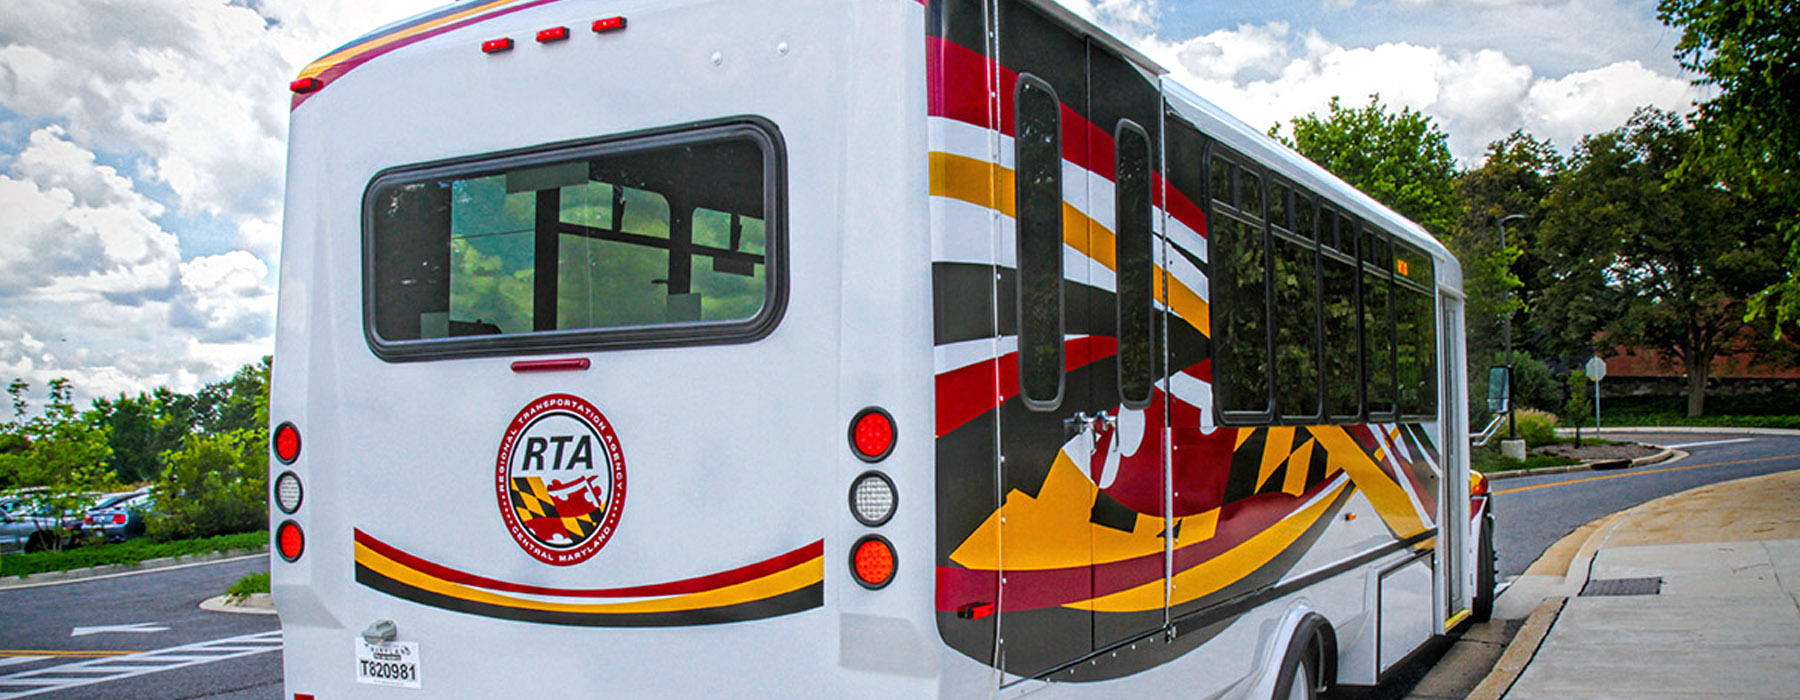 CMTMC Meeting date: Riders Advisory Council (RAC) First Meeting: Thursday, September 6, 2018 at 6:00 p.m. at 8510 Corridor Road, Suite 110, Savage (RTA Route 409).